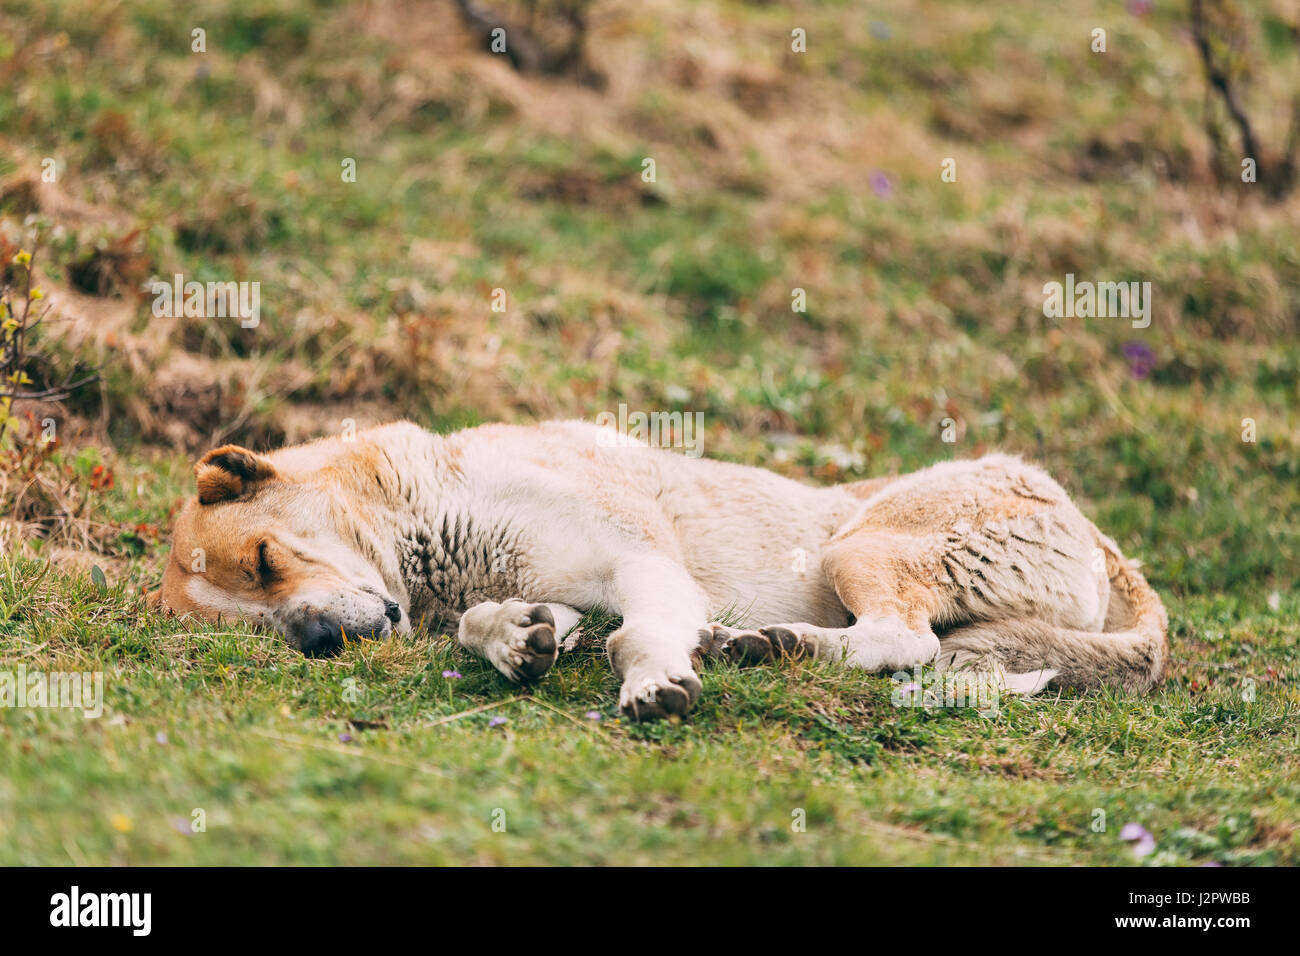 Central Asian Shepherd Dog Sleeping Outdoor In Mountains Of Caucasus. Alabai - An Ancient Breed From The Regions - Stock Image